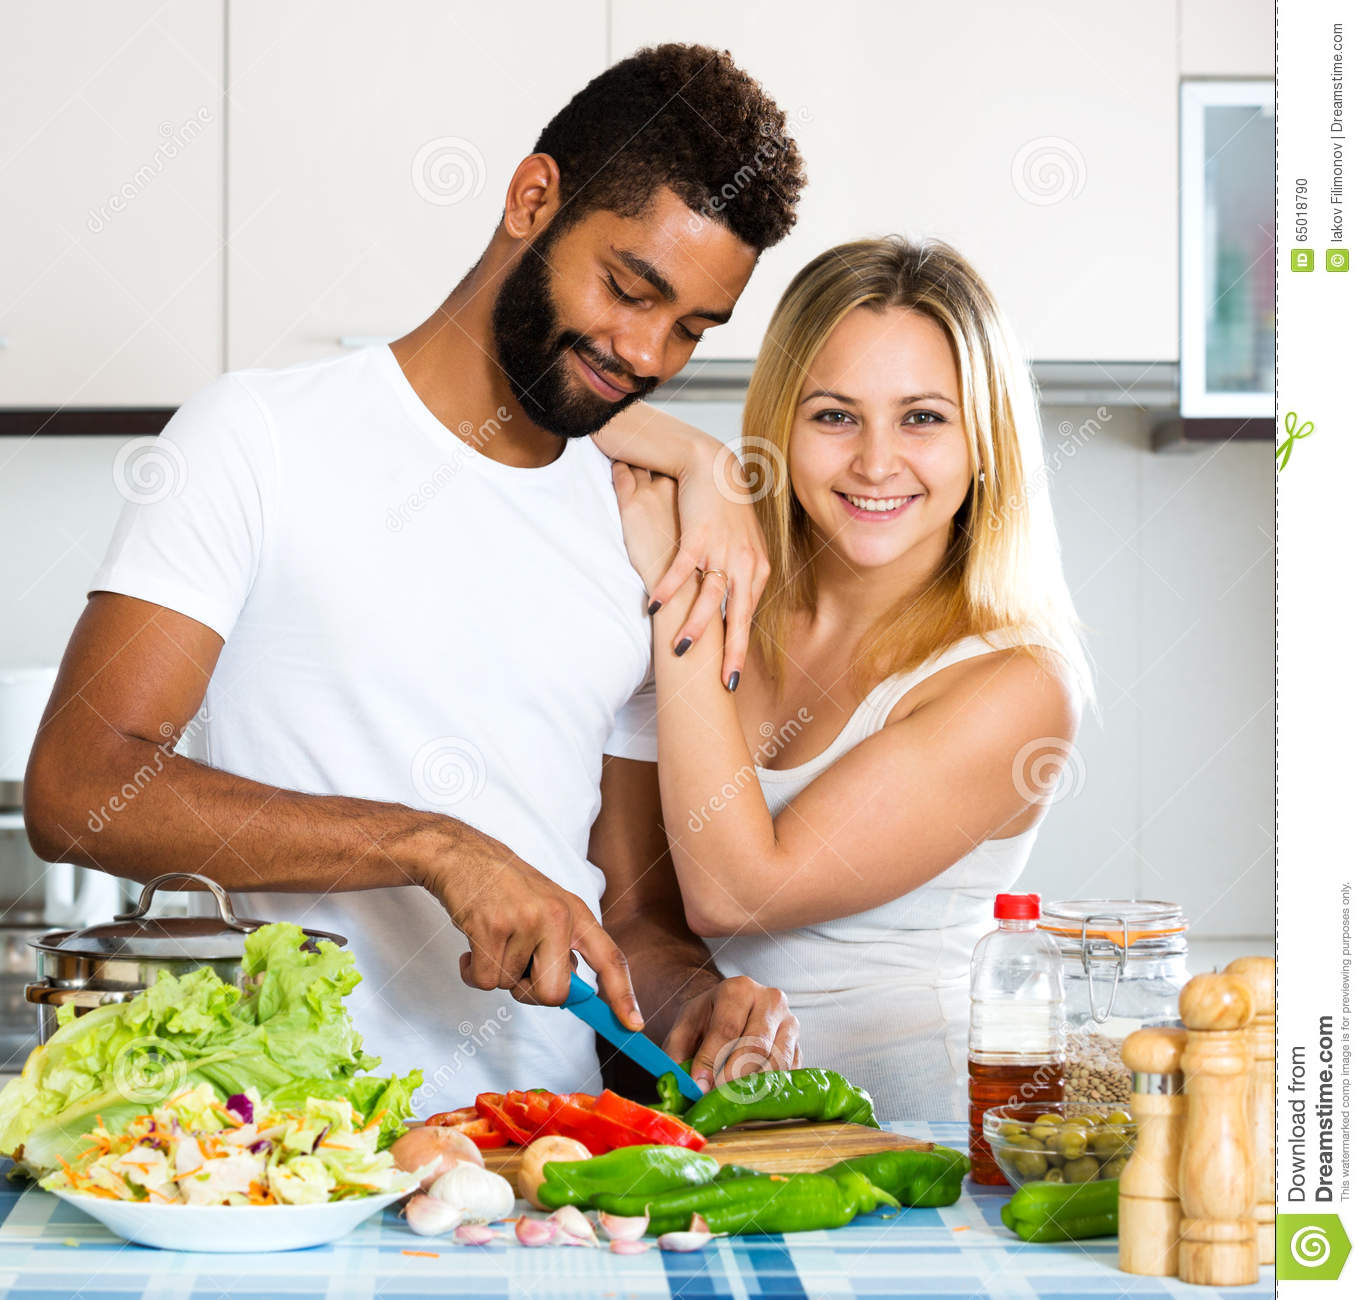 Discussion on this topic: The Healthy, Happy Husband Diet, the-healthy-happy-husband-diet/